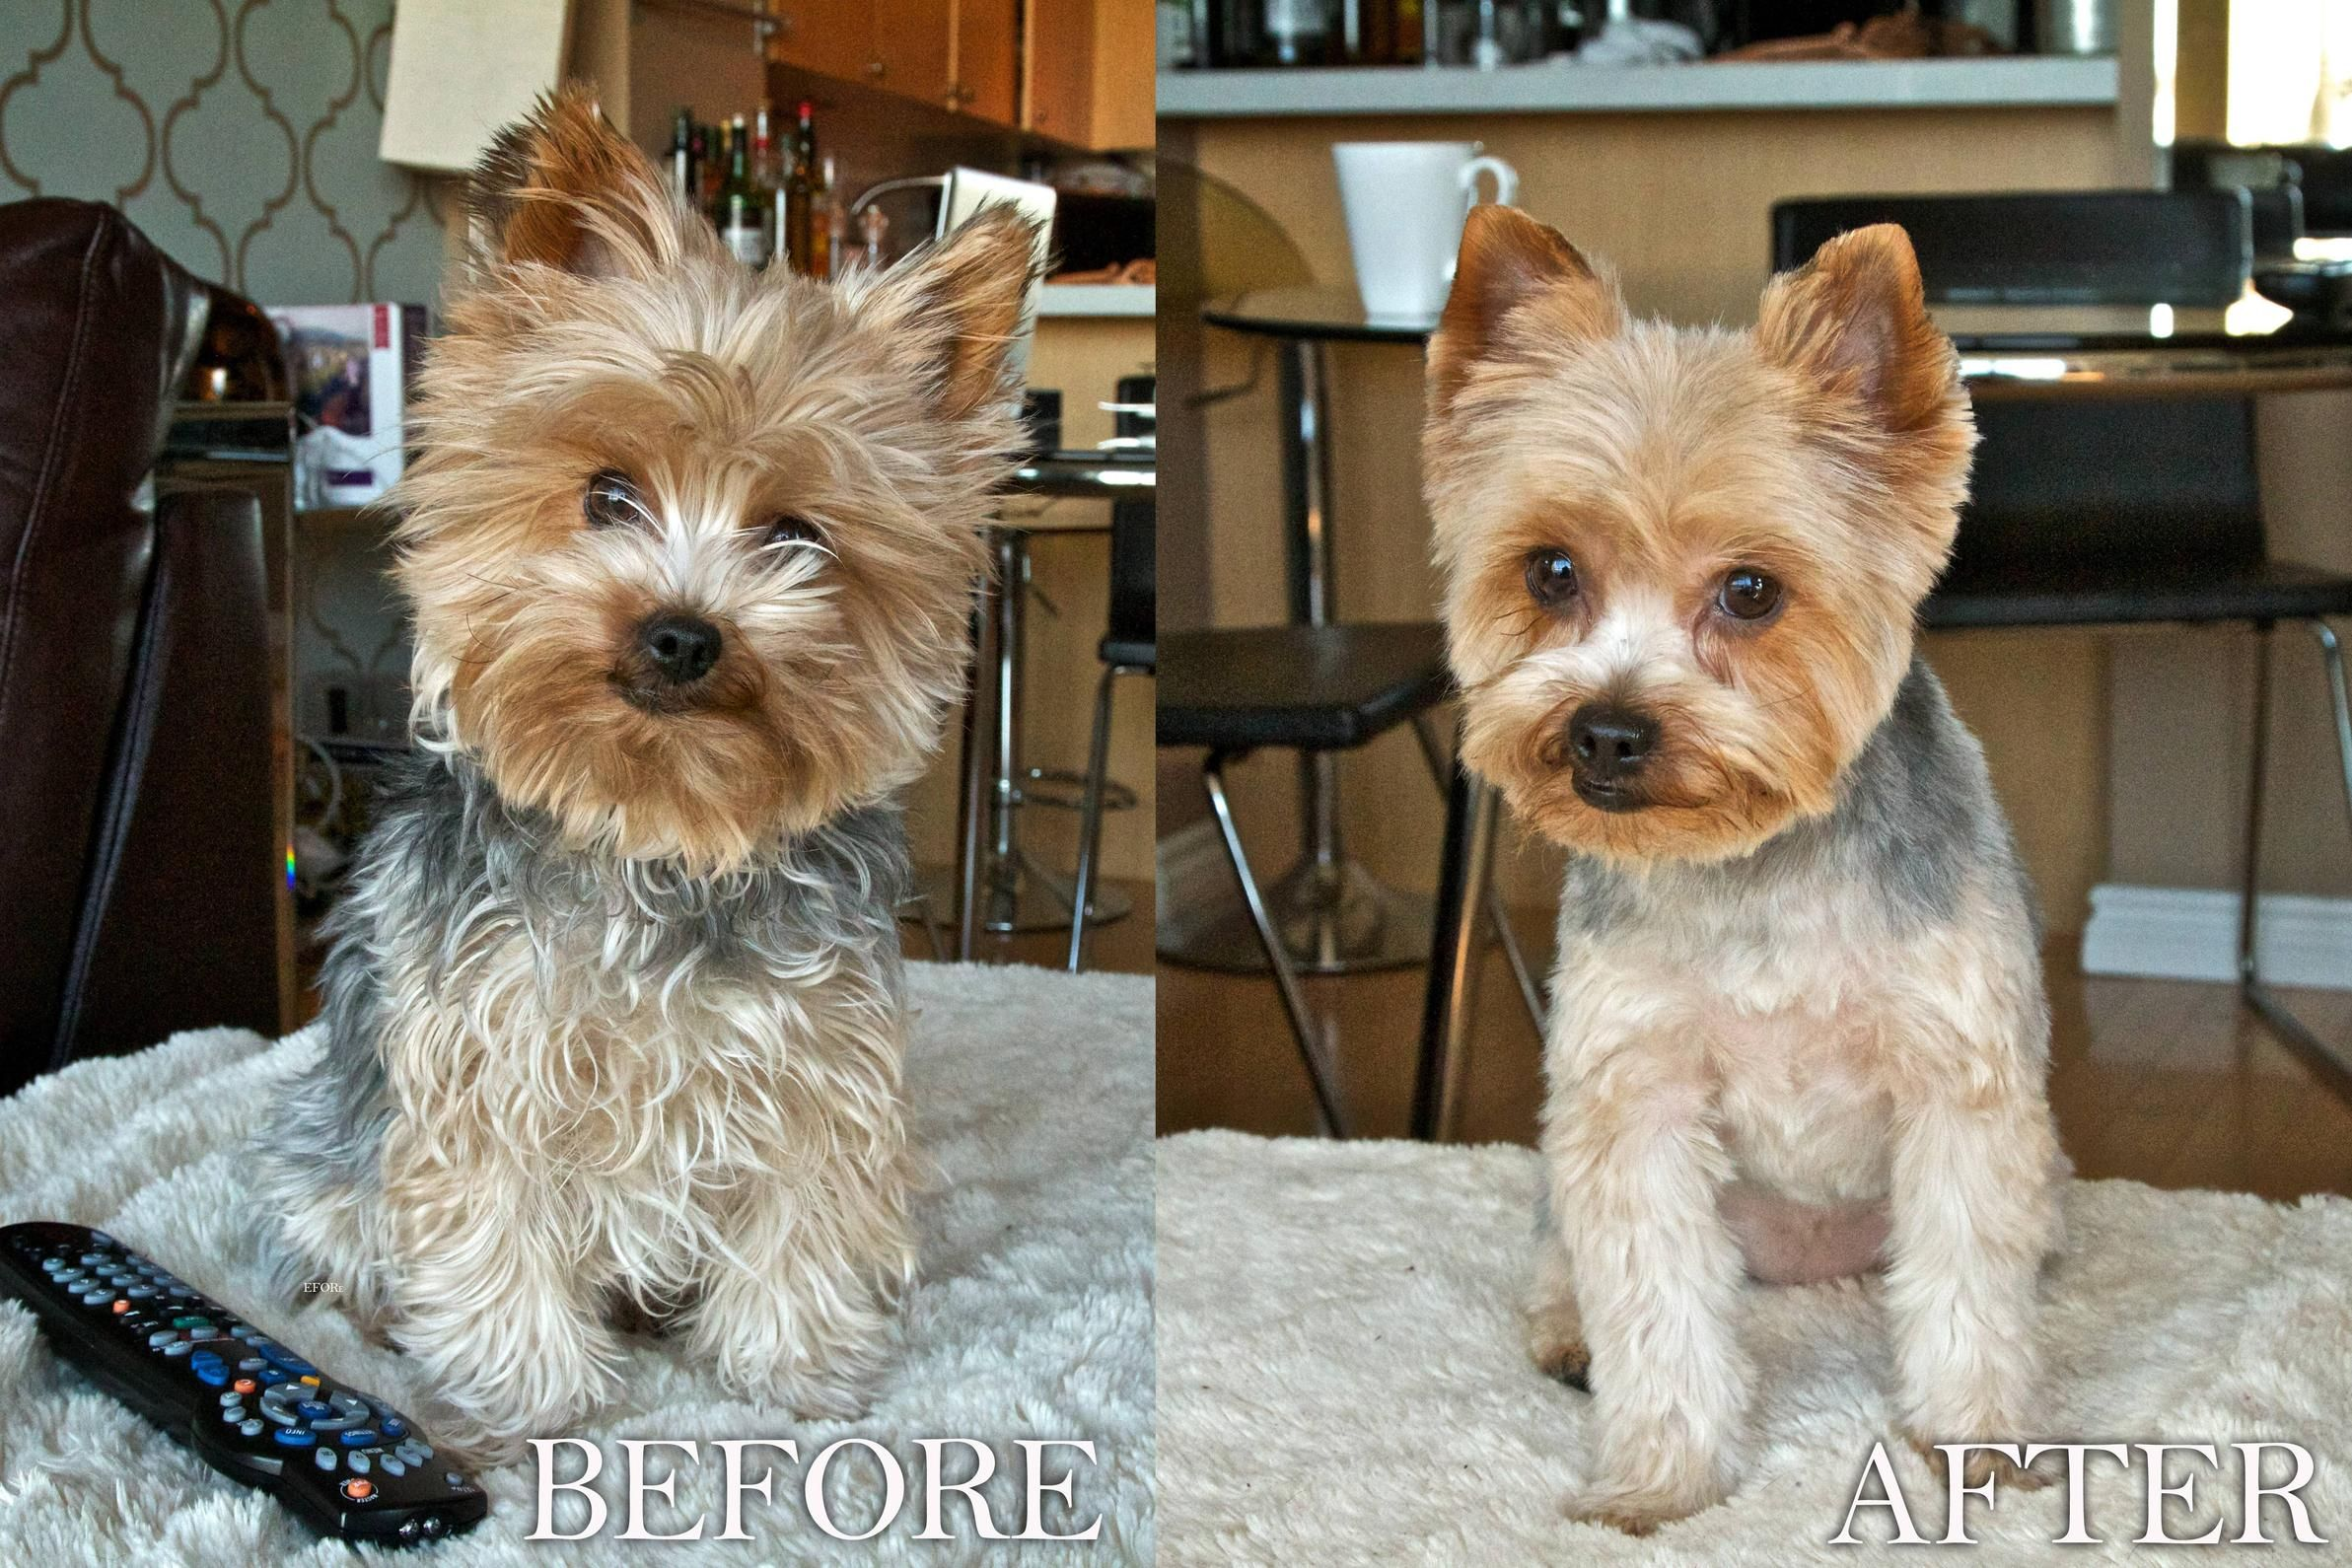 Yorkie puppy cut google search dogs pinterest yorkie puppy yorkie puppy cut google search dogs pinterest yorkie puppy yorkies and puppy face nvjuhfo Images